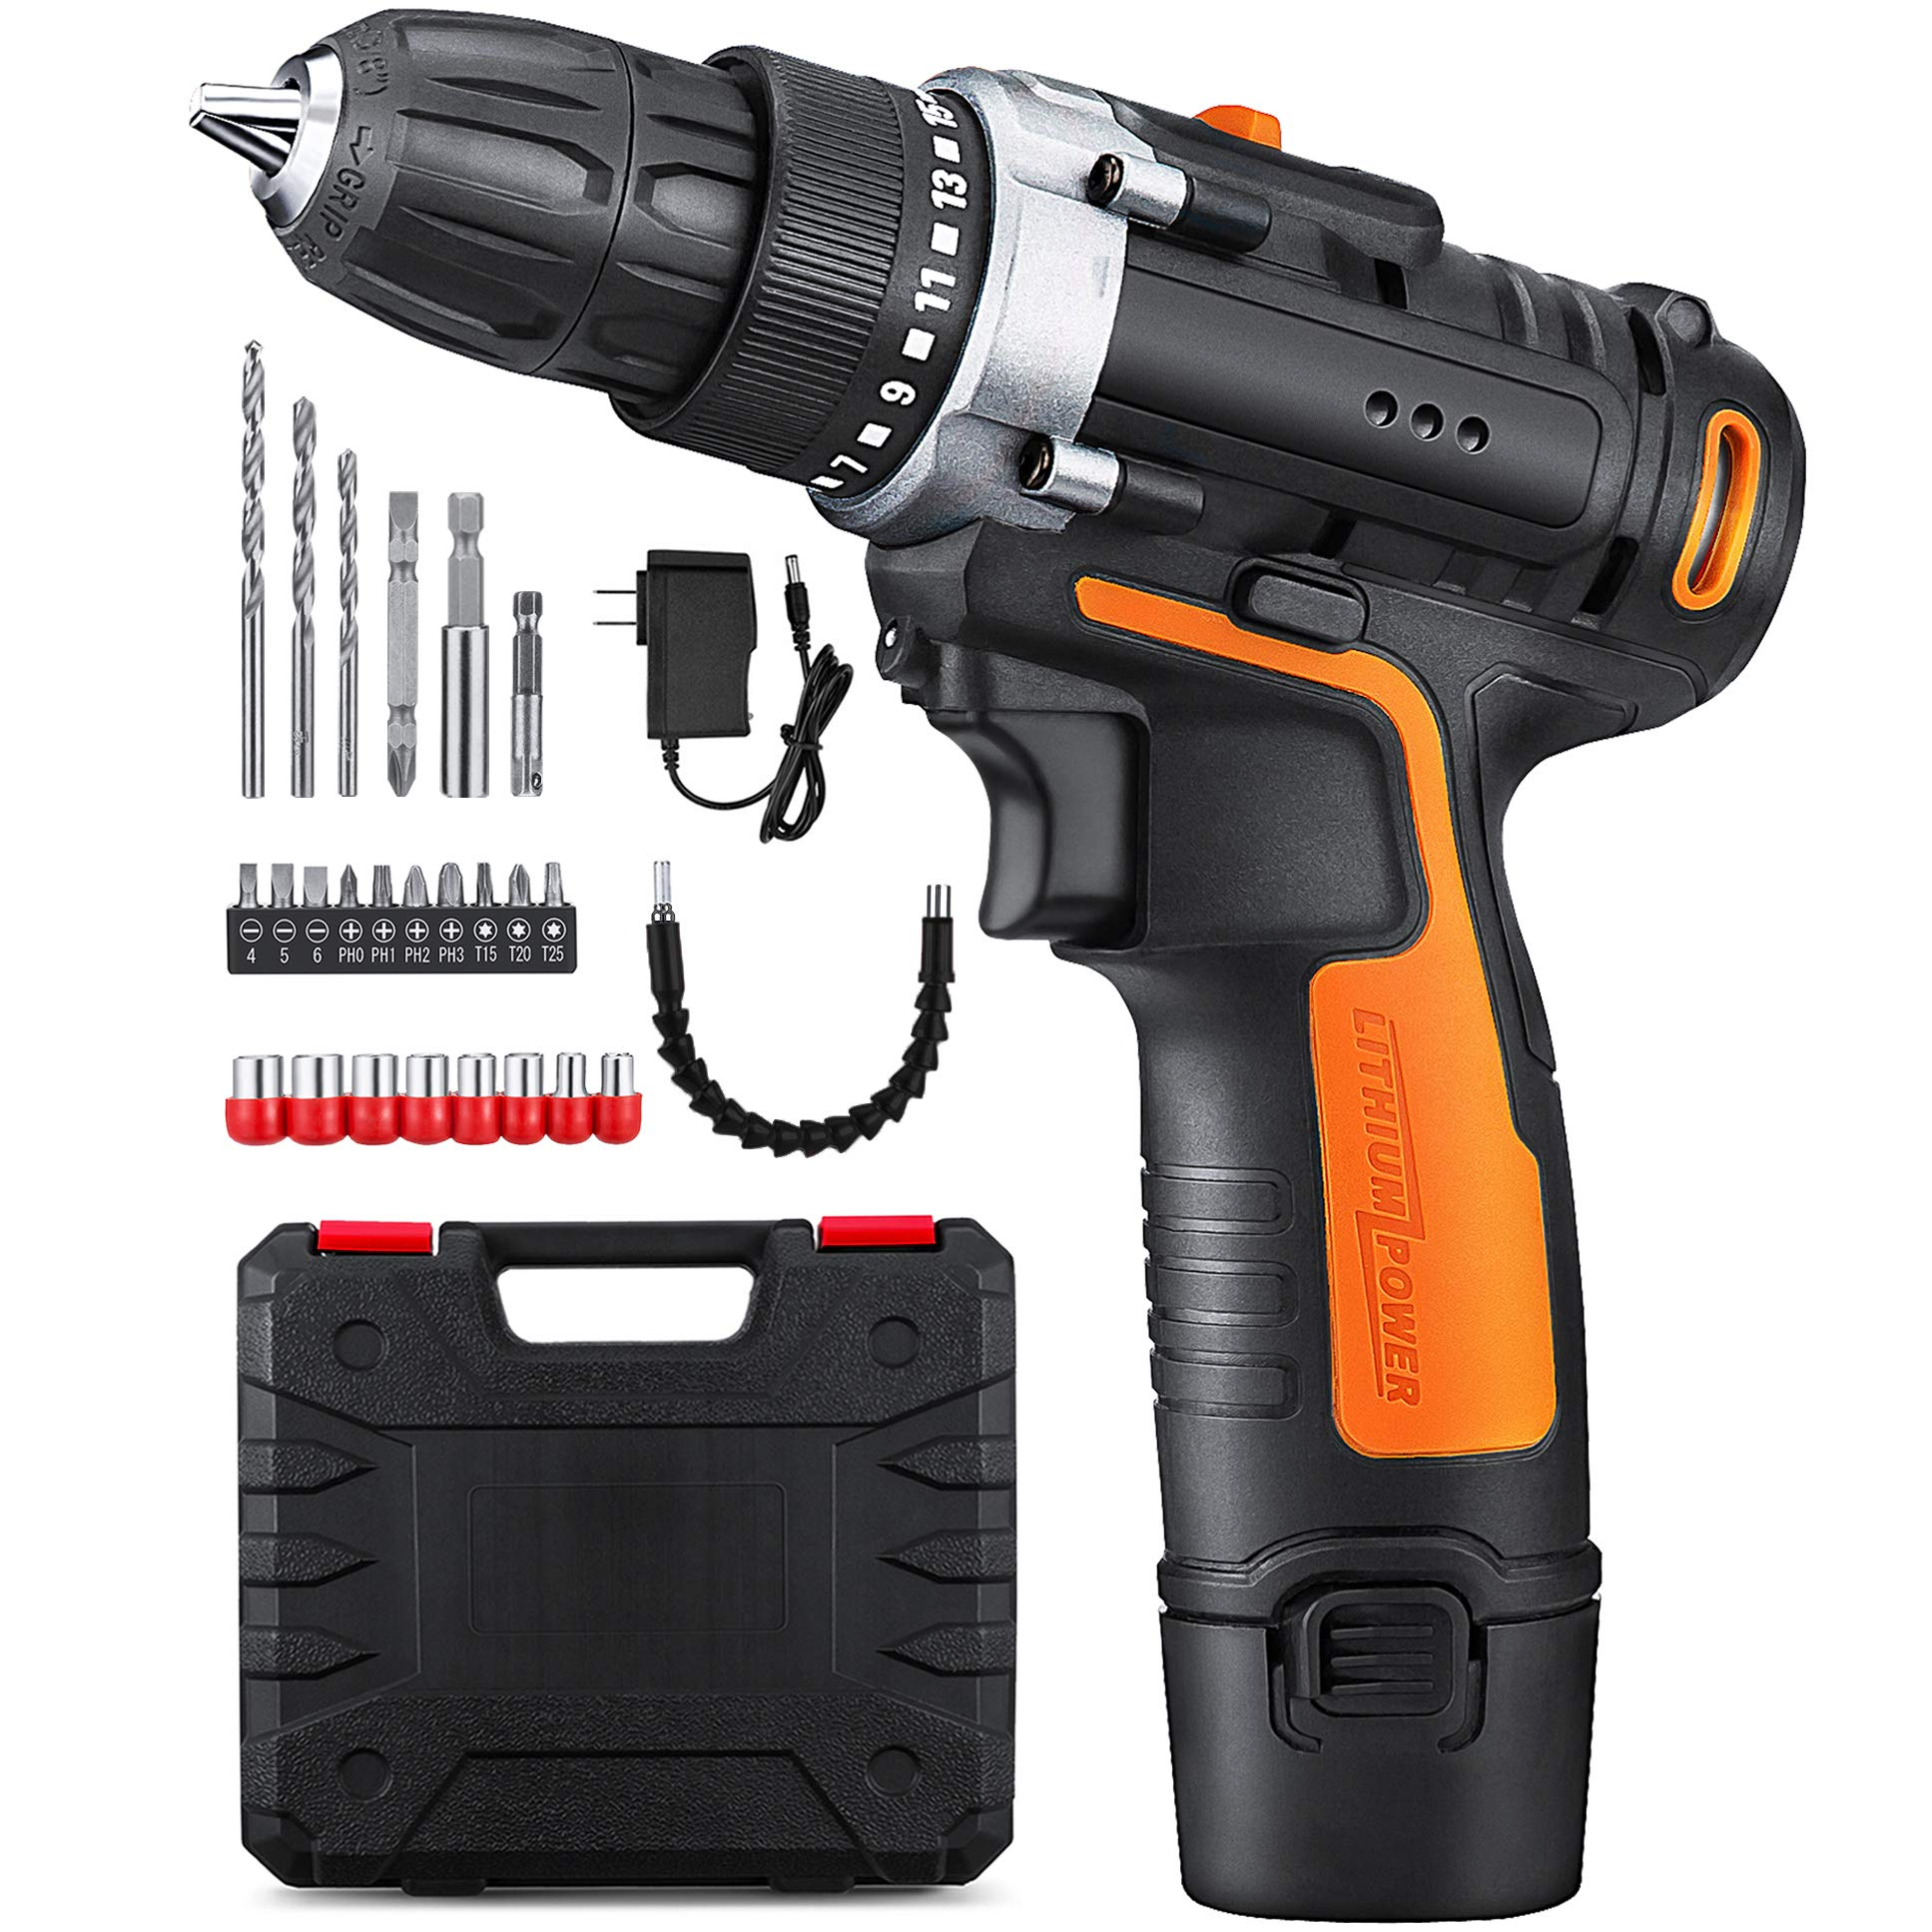 YIMALER 12V Cordless Drill Driver Kit Handheld Drill 1.5Ah Li-Ion 26 Accessories 3/8'' Chuck Max Torque 265 In-Lb 2 Speed Fast Charger LED light for Household Jobs Battery Included